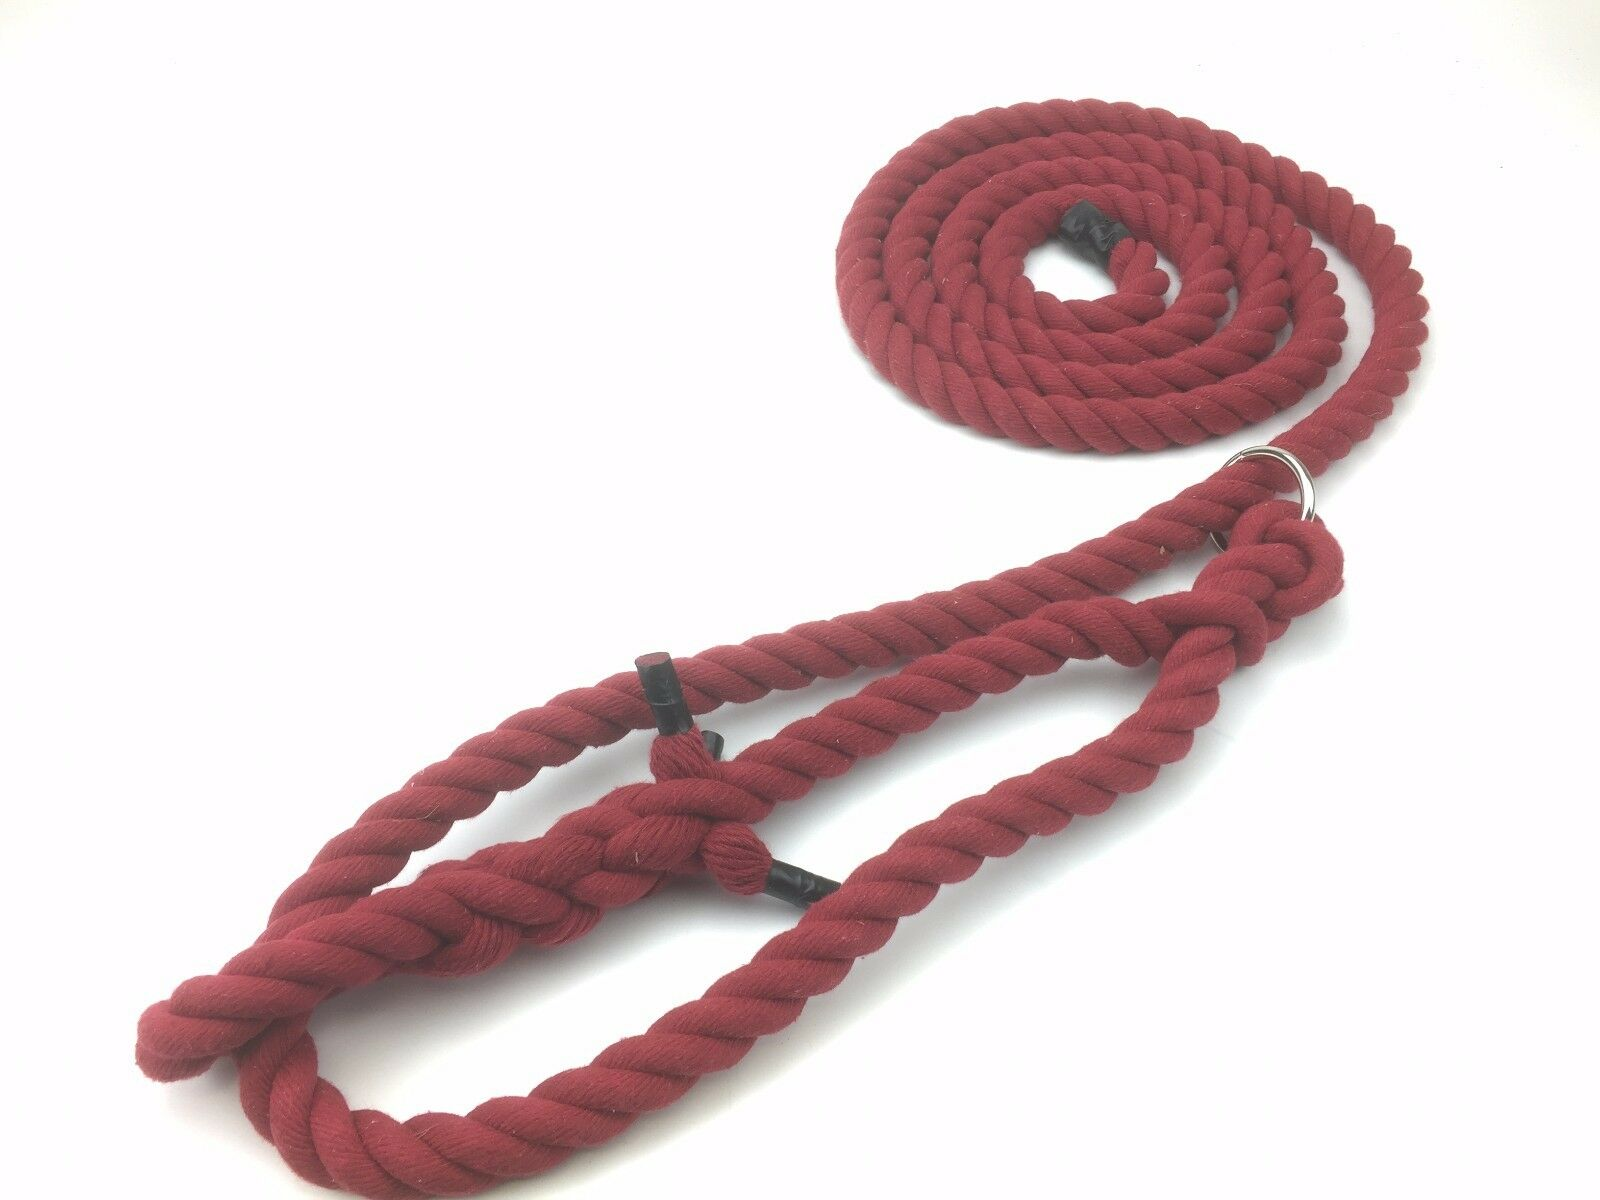 5 x 20mm Burgundy Red Natural Cotton Bull Halters, Rope Halter, Ringed